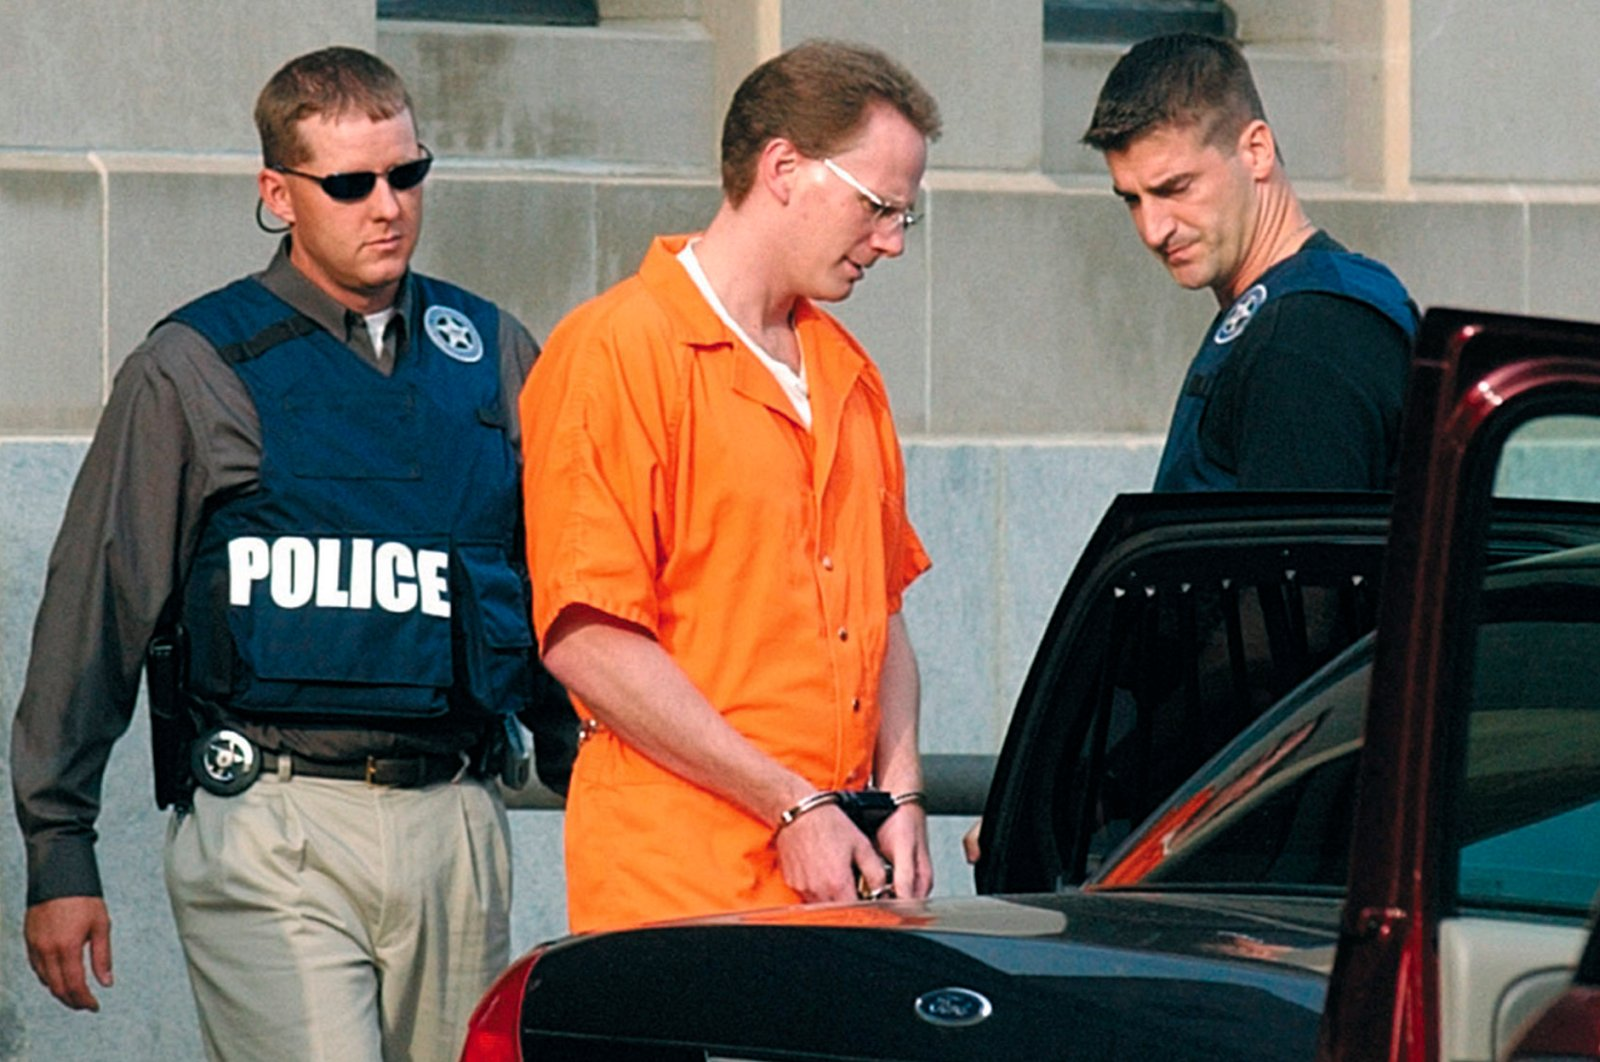 In this Aug. 18, 2004 file photo, Dustin Honken is led by federal marshals to a waiting car after the second day of jury selection in federal court in Sioux City, Iowa. (AP Photo)